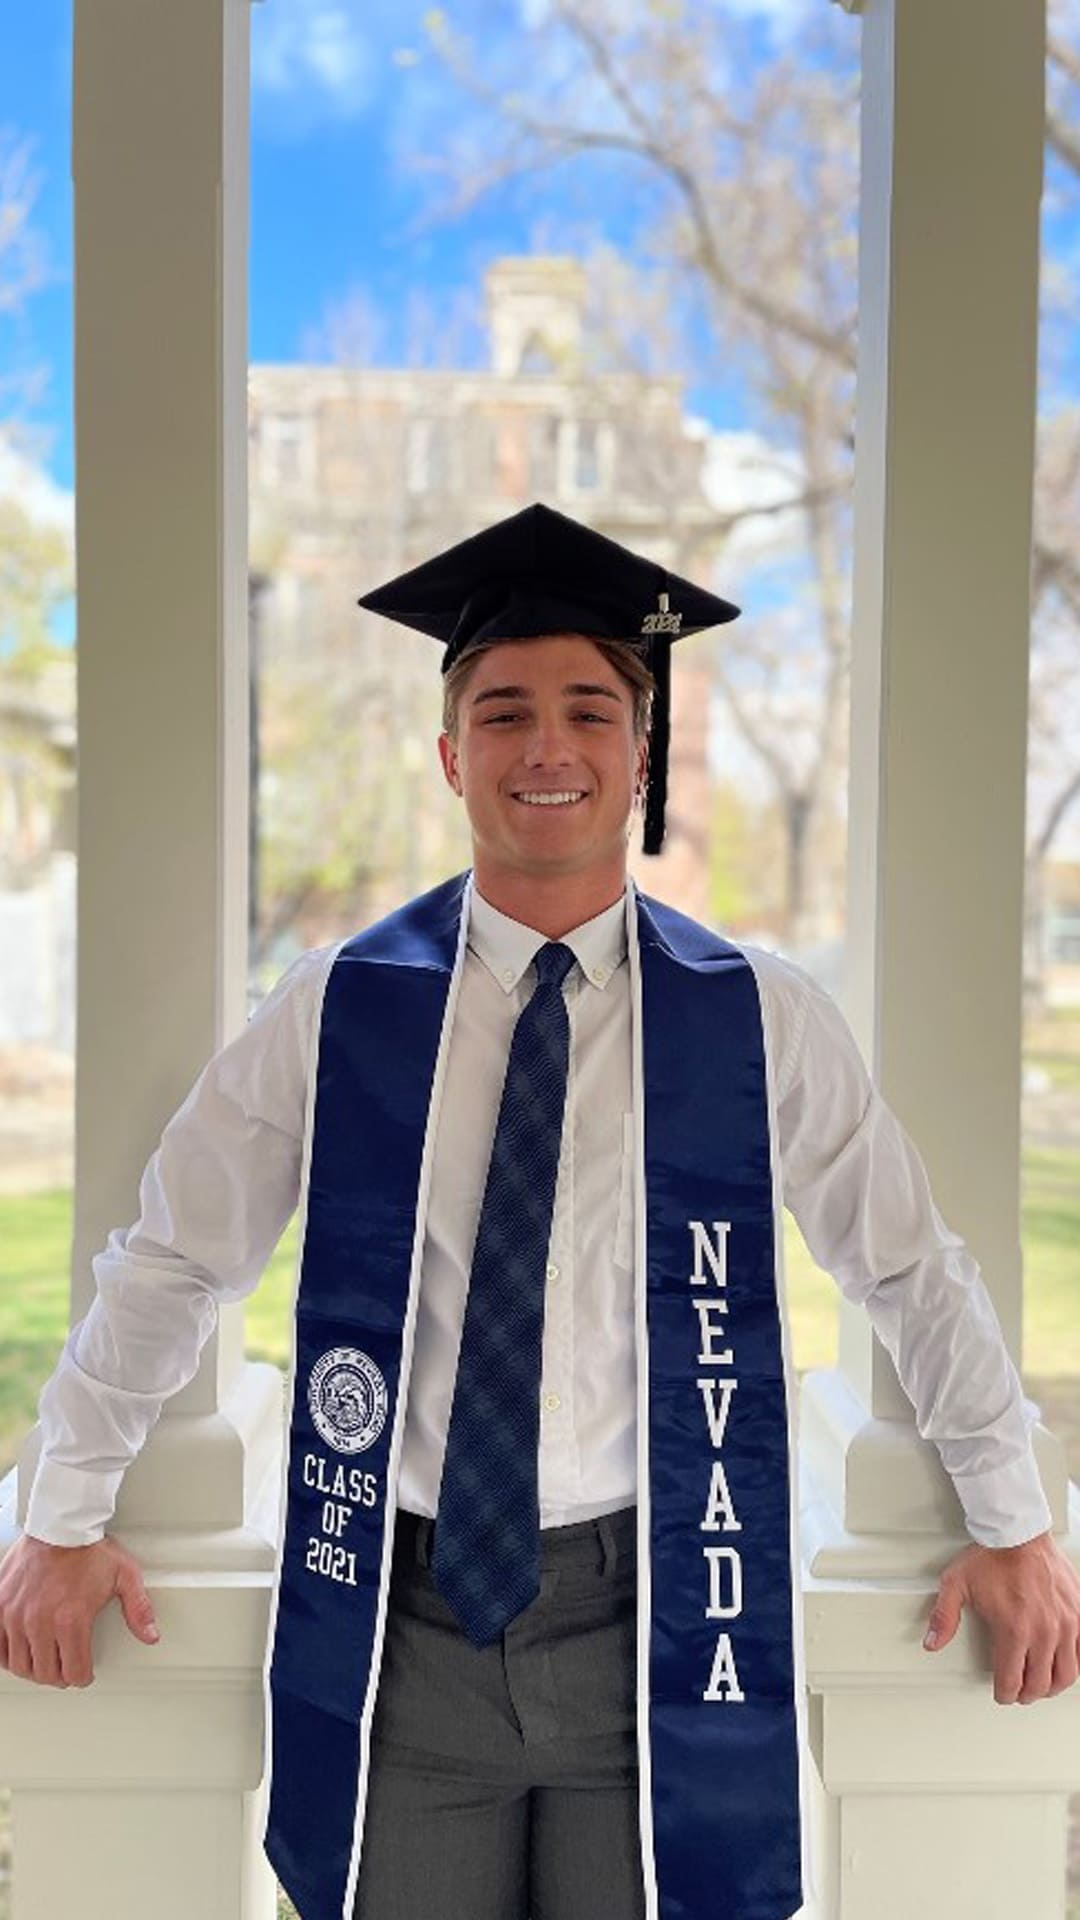 A student wears a tie and graduation regalia and poses for a picture while leaning against the railing at the Honor Court on the University of Nevada, Reno campus.